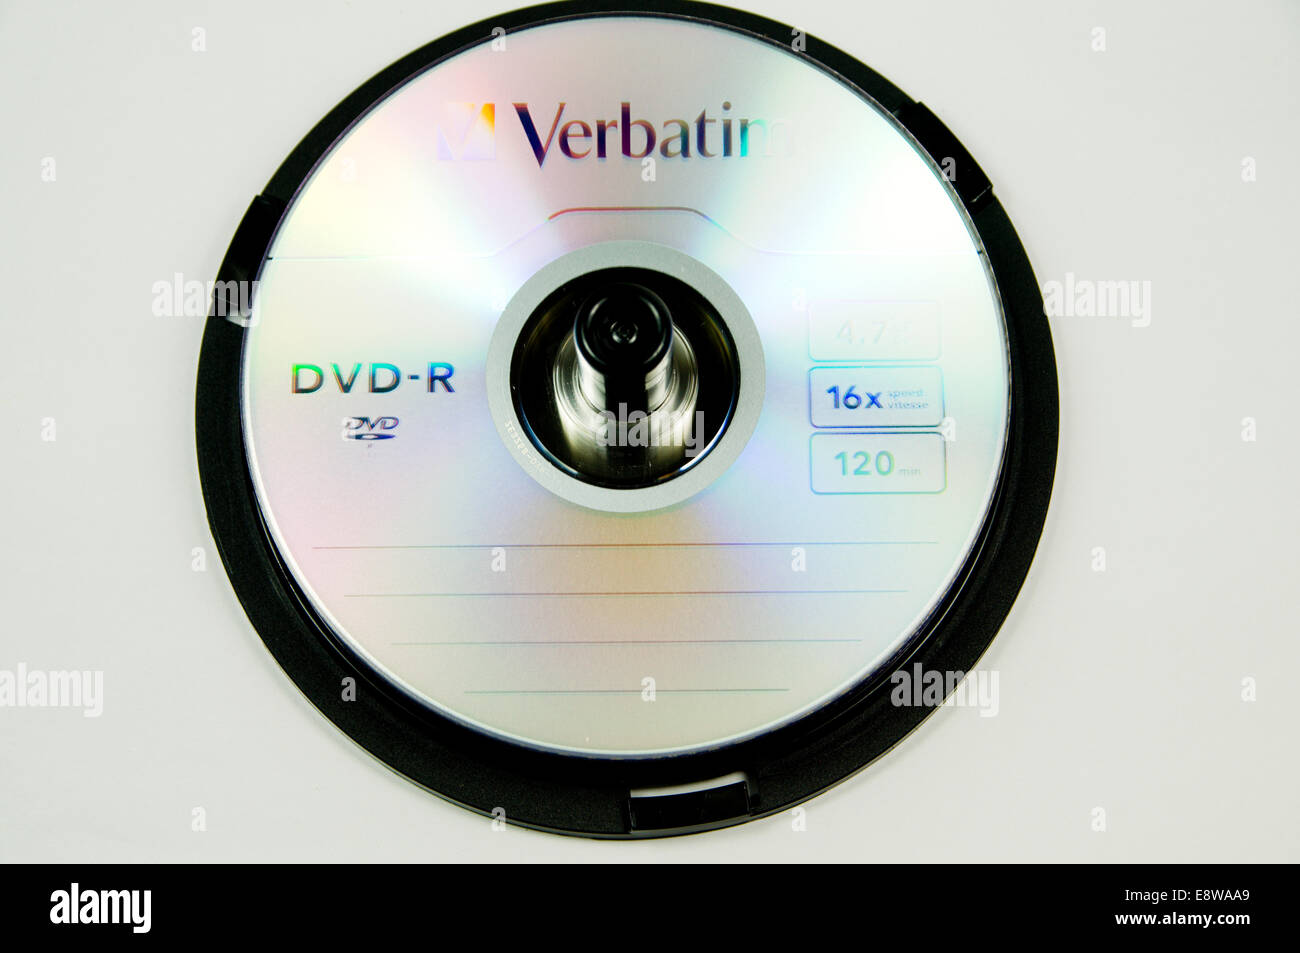 Stack of Blank DVDs - Stock Image